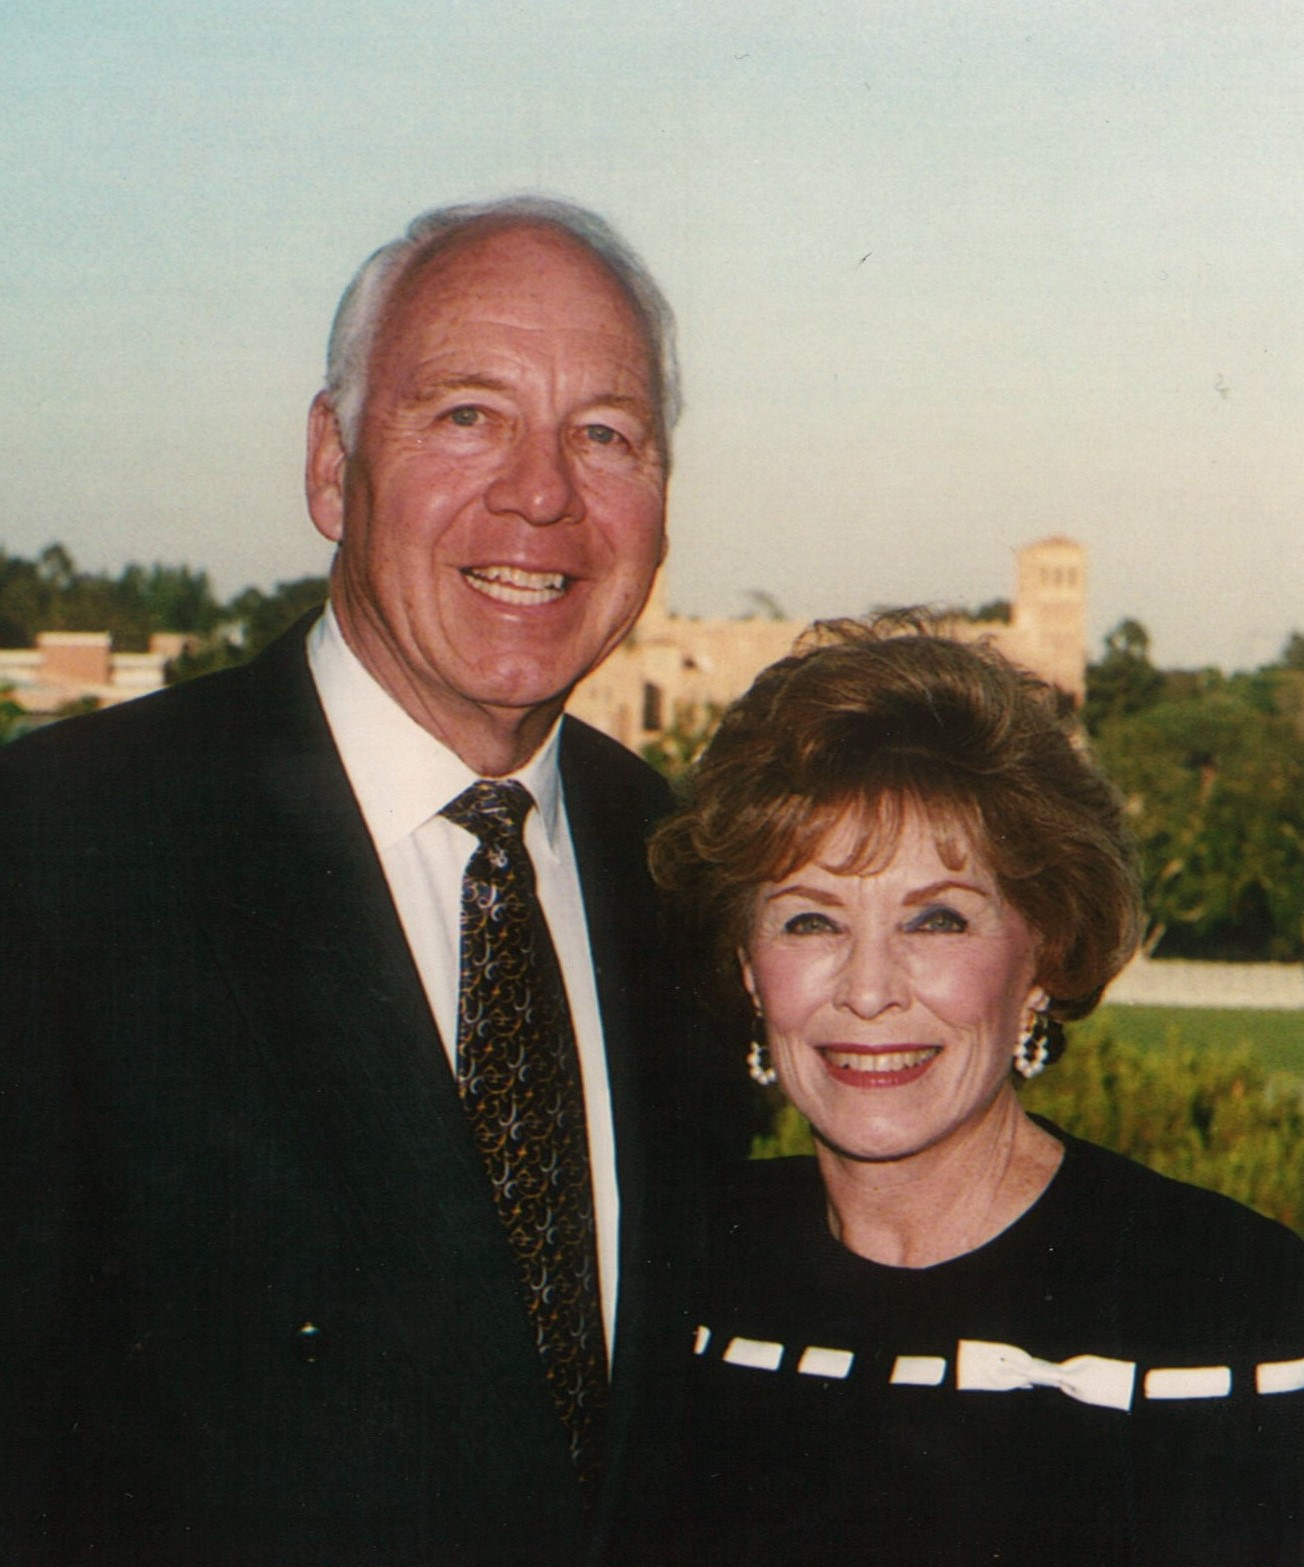 ish Market co-founder Bob Wilson with wife, Marion